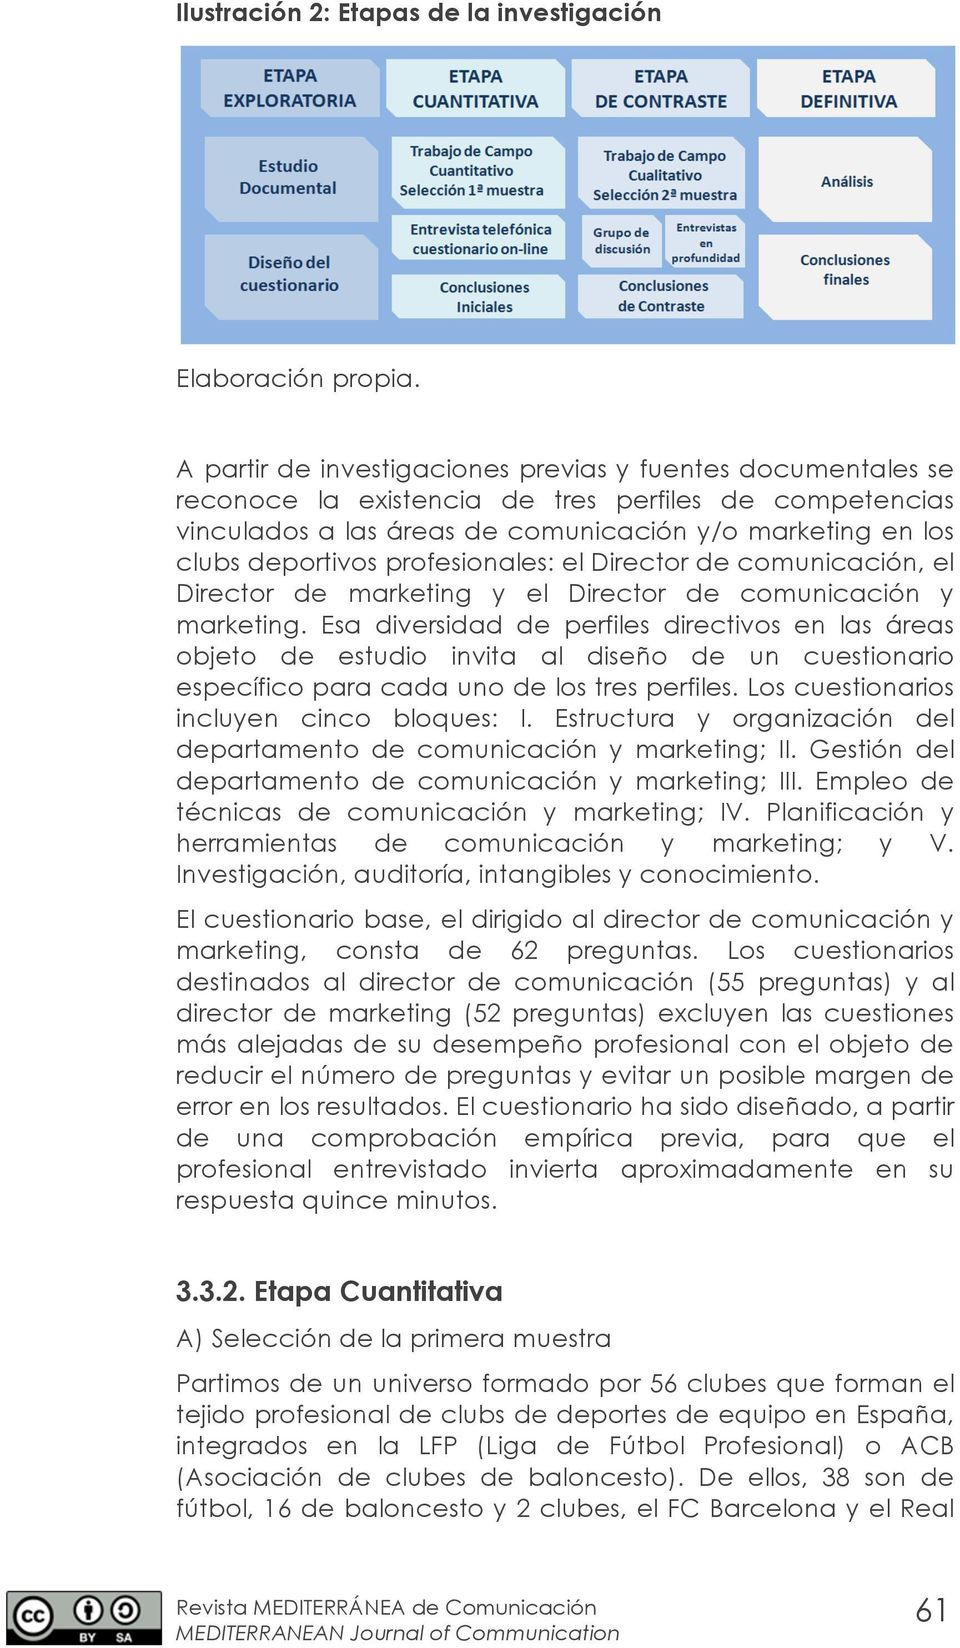 profesionales: el Director de comunicación, el Director de marketing y el Director de comunicación y marketing.